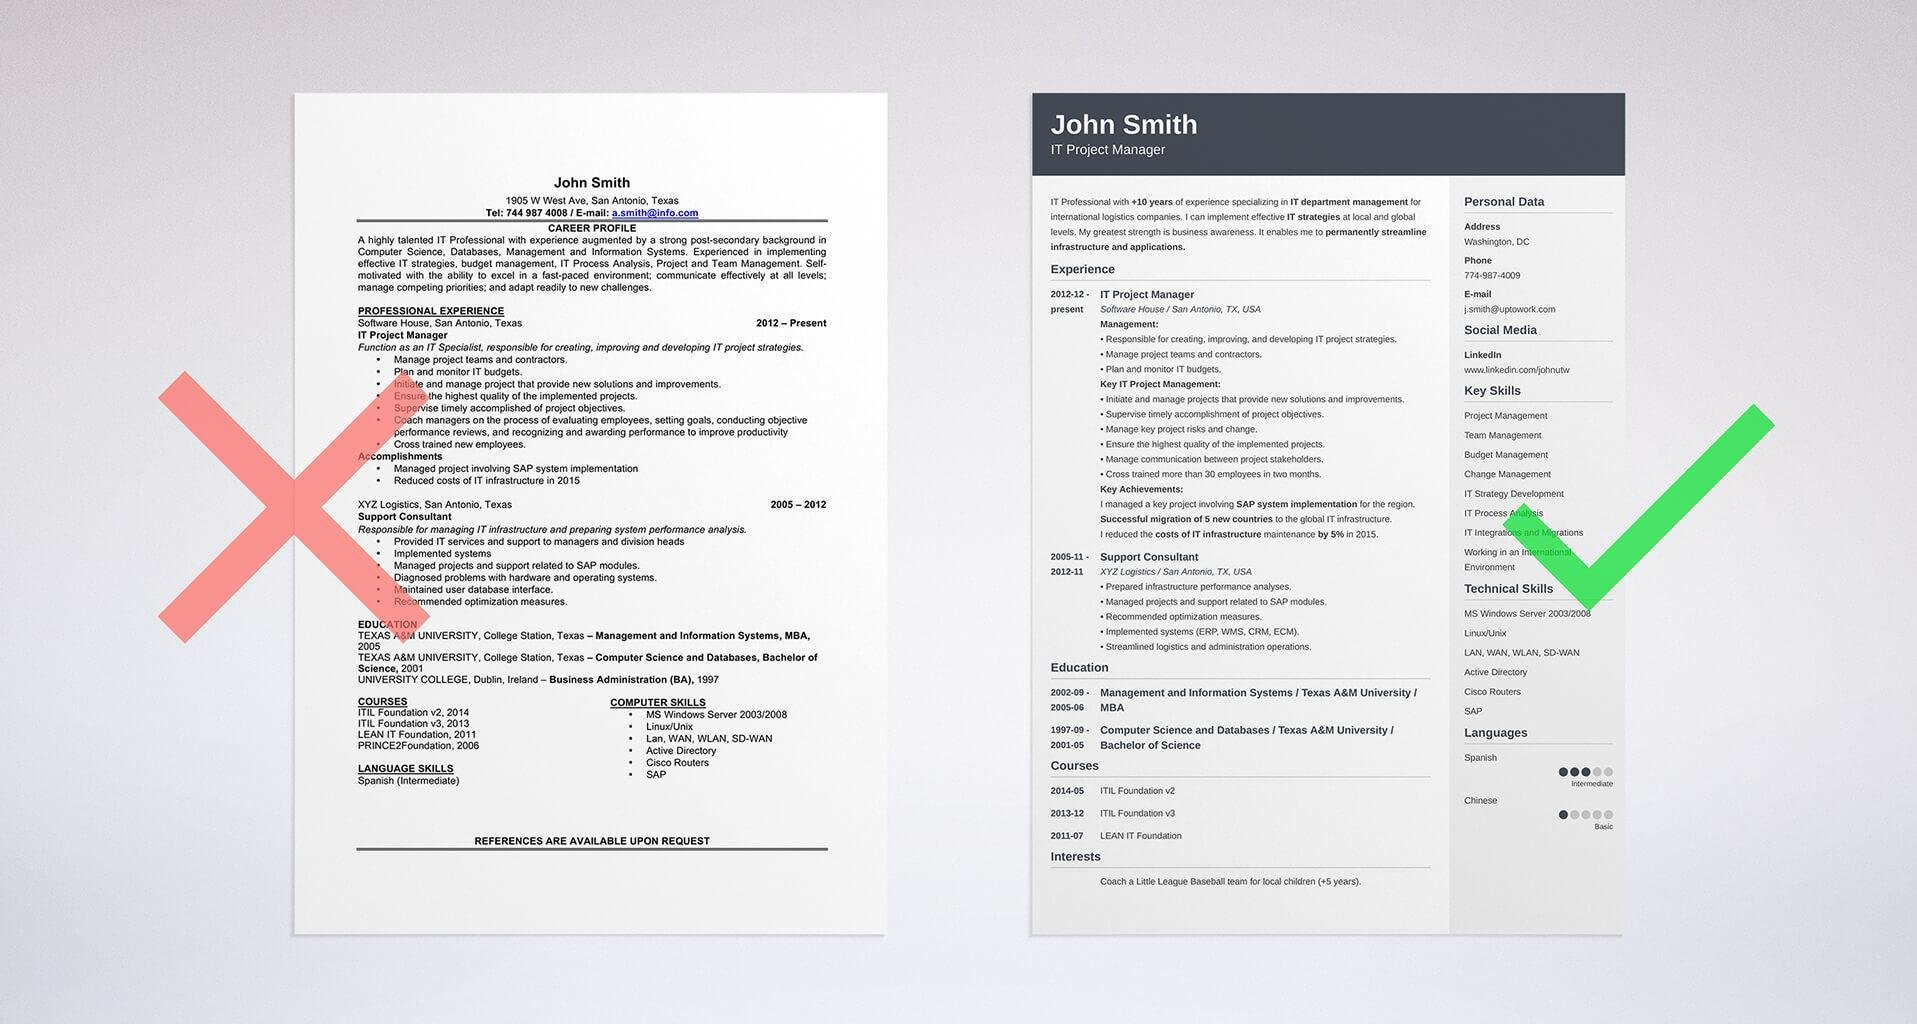 best resume format professional samples experience two year formats template midwife Resume Experience Resume Format Two Year Experience